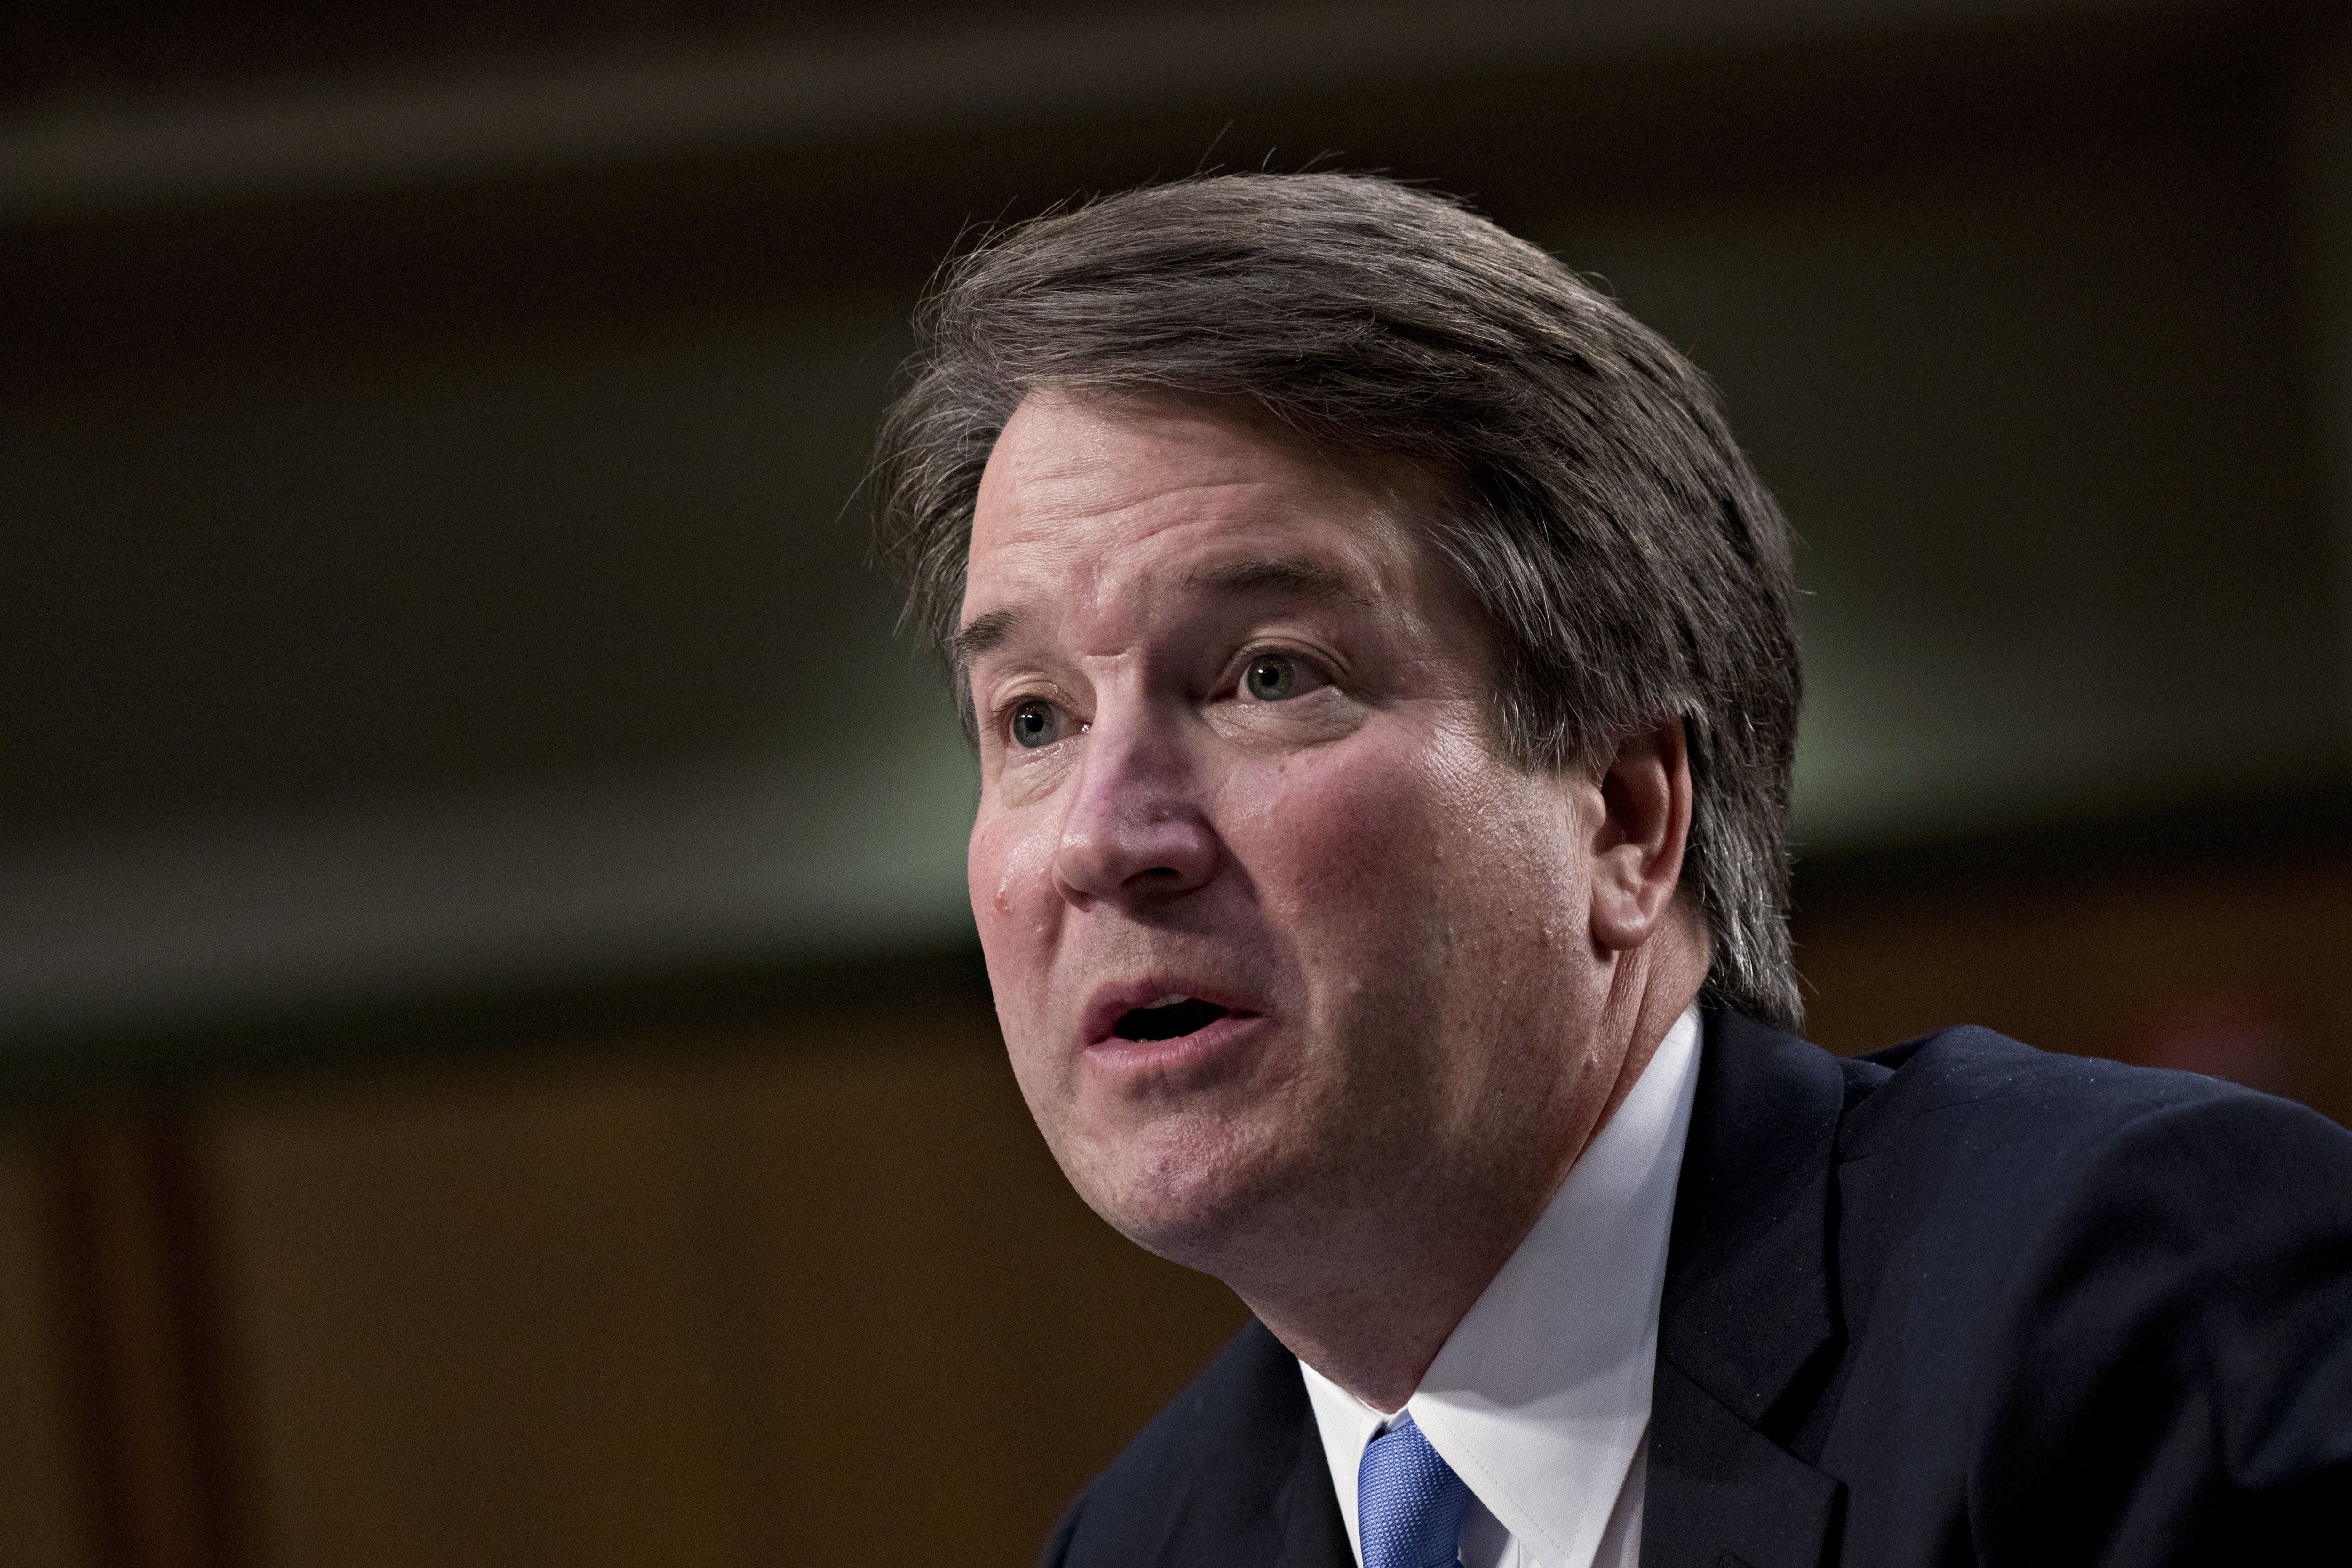 These Teens Don't Know Brett Kavanaugh. They Do Know About Rape Culture.